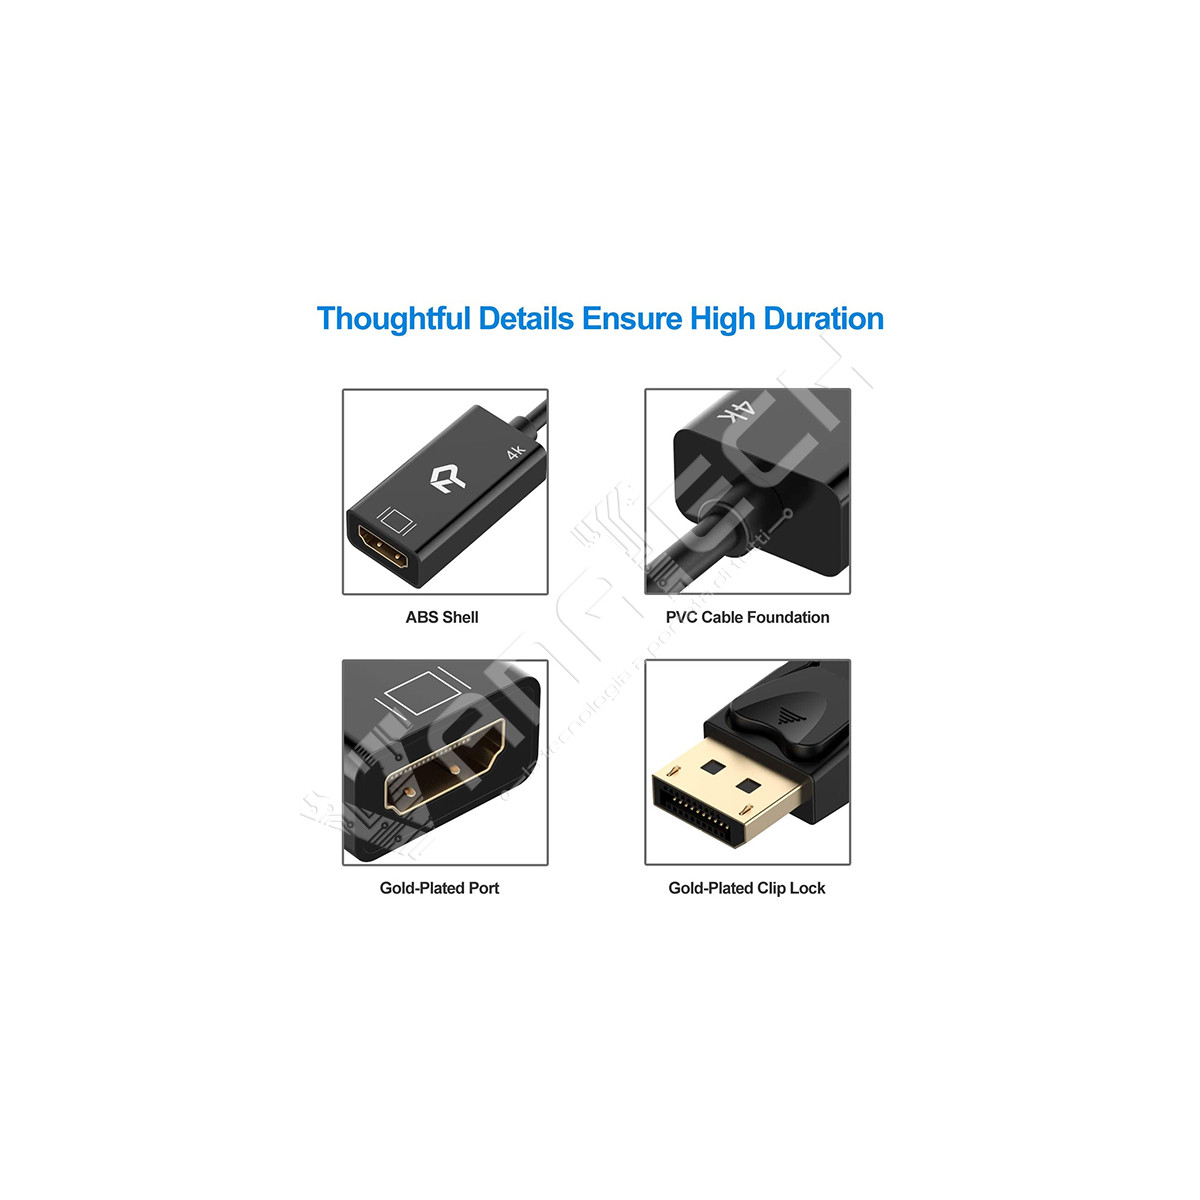 MEMORIA NAND FLASH U0604 IPHONE 6 6 PLUS 64GB